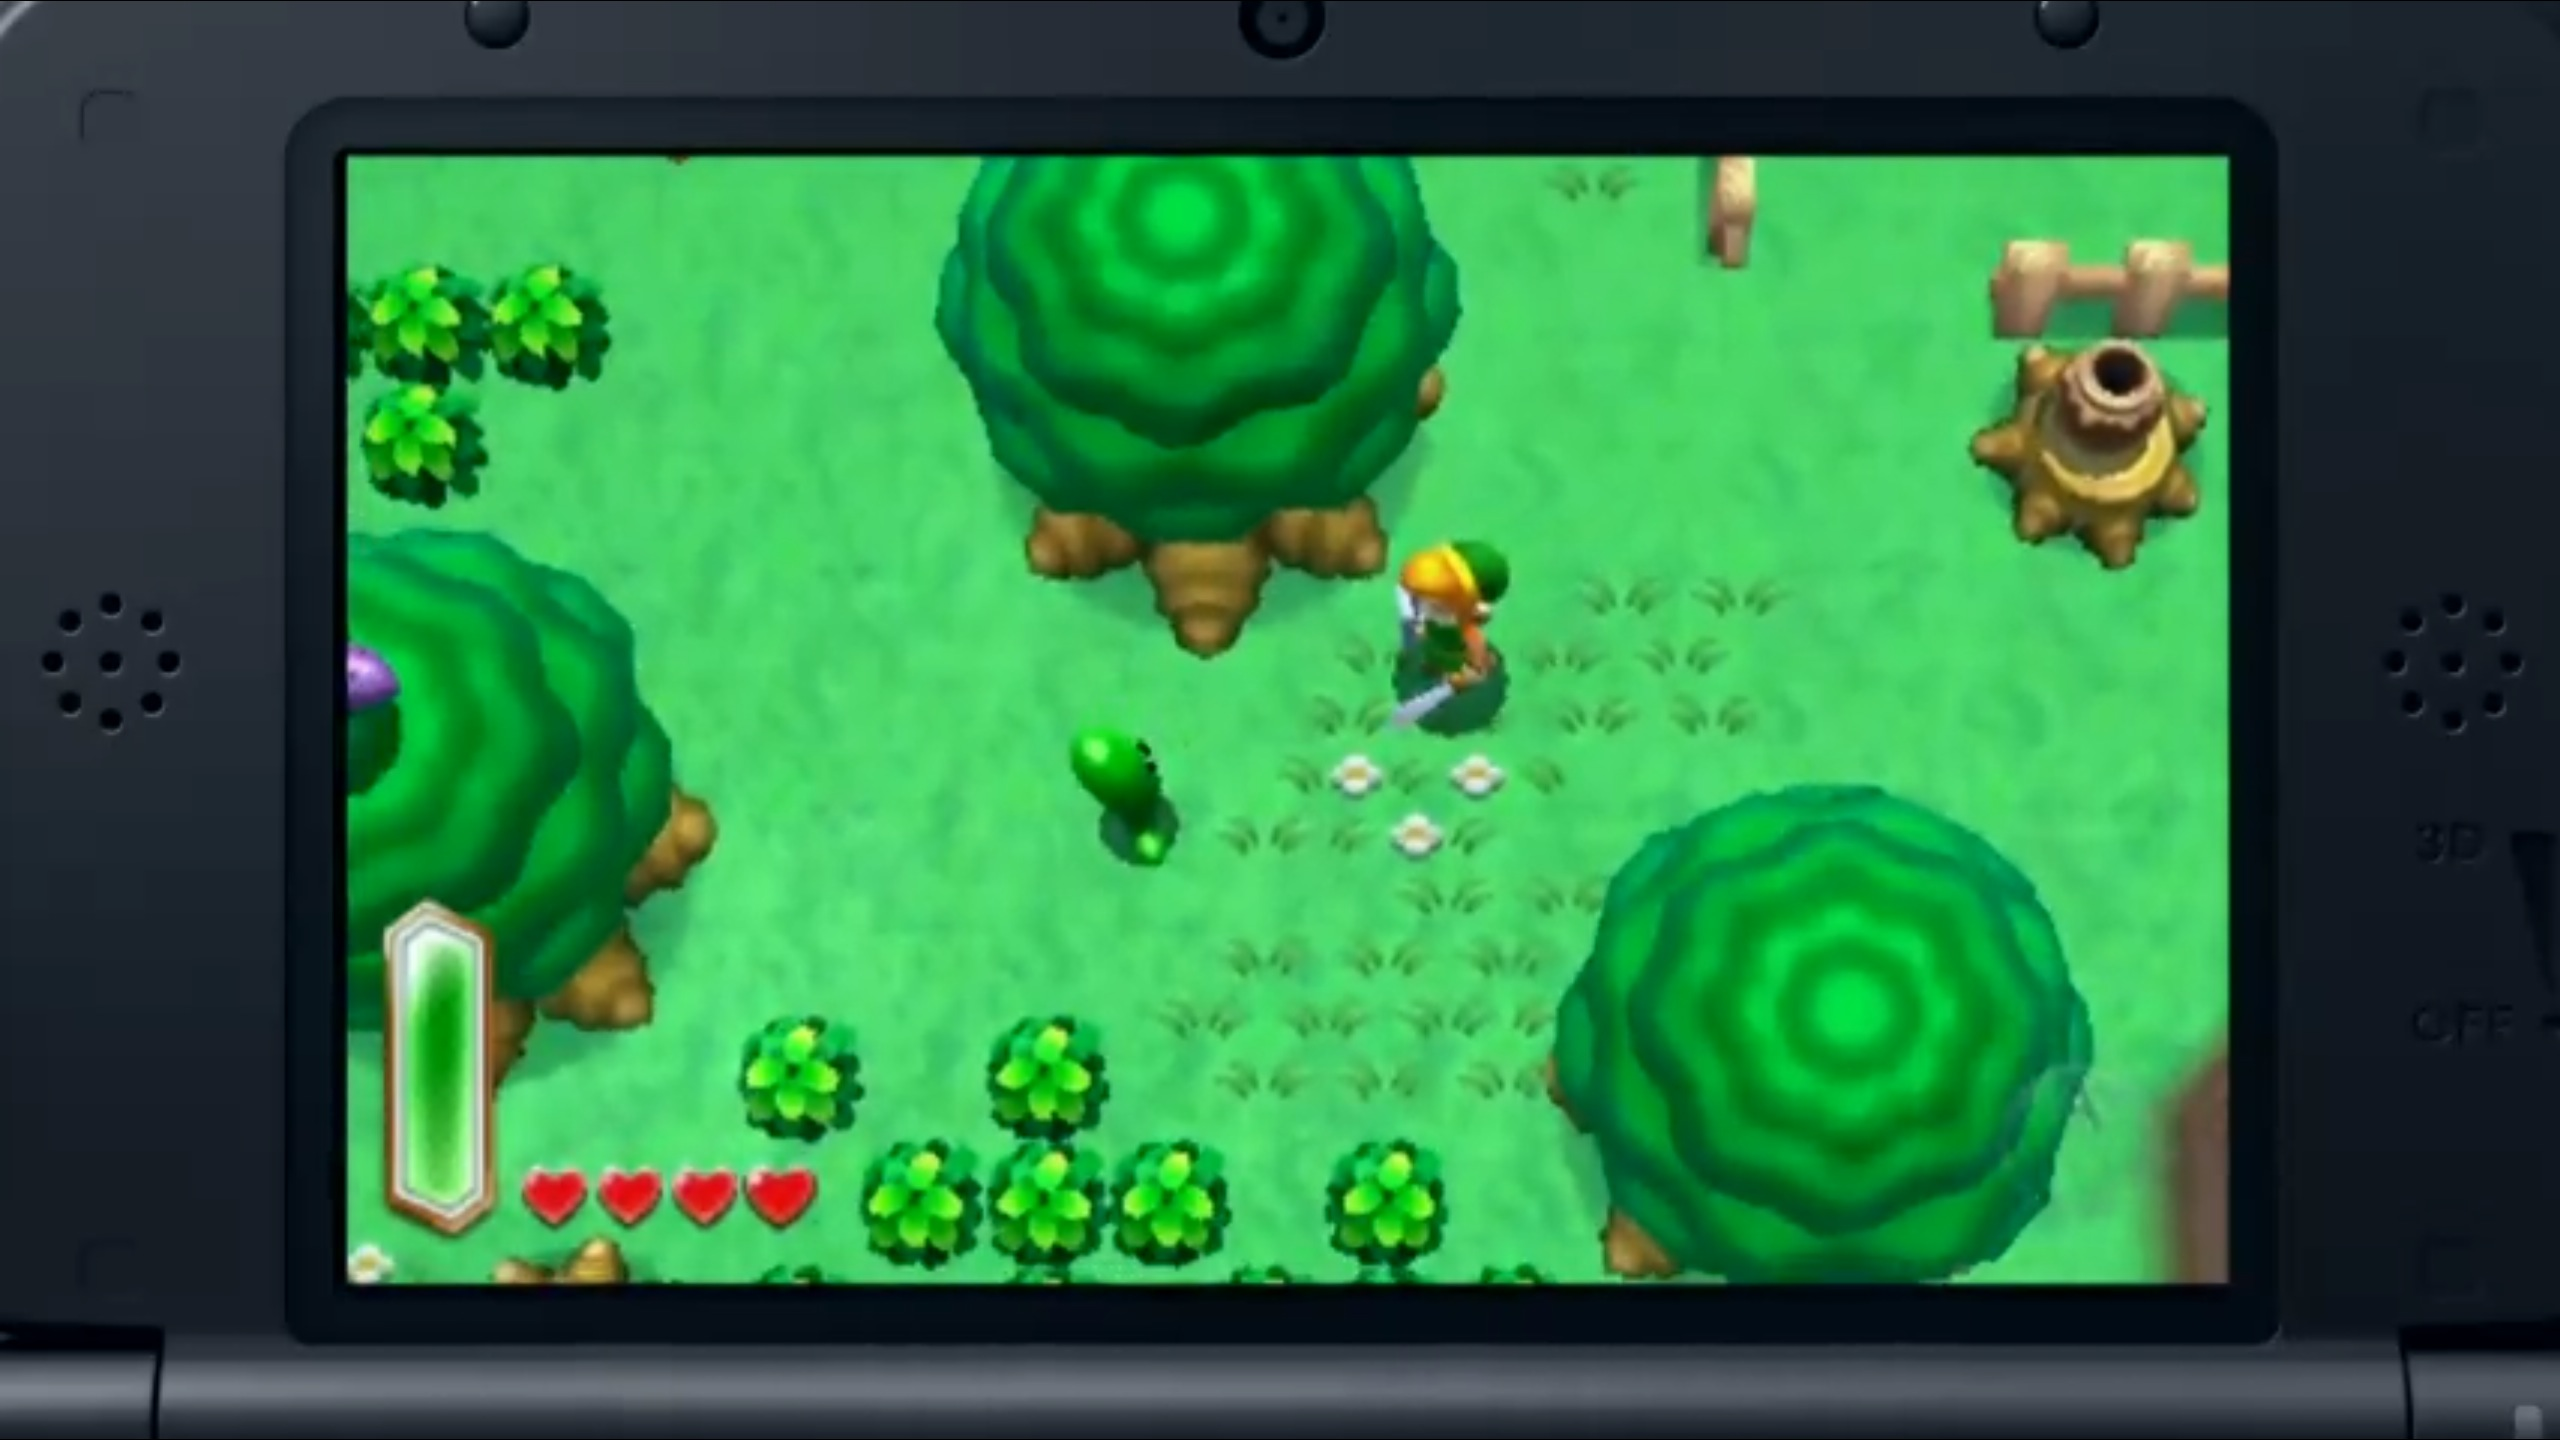 A Link to the Past 2 Announced!